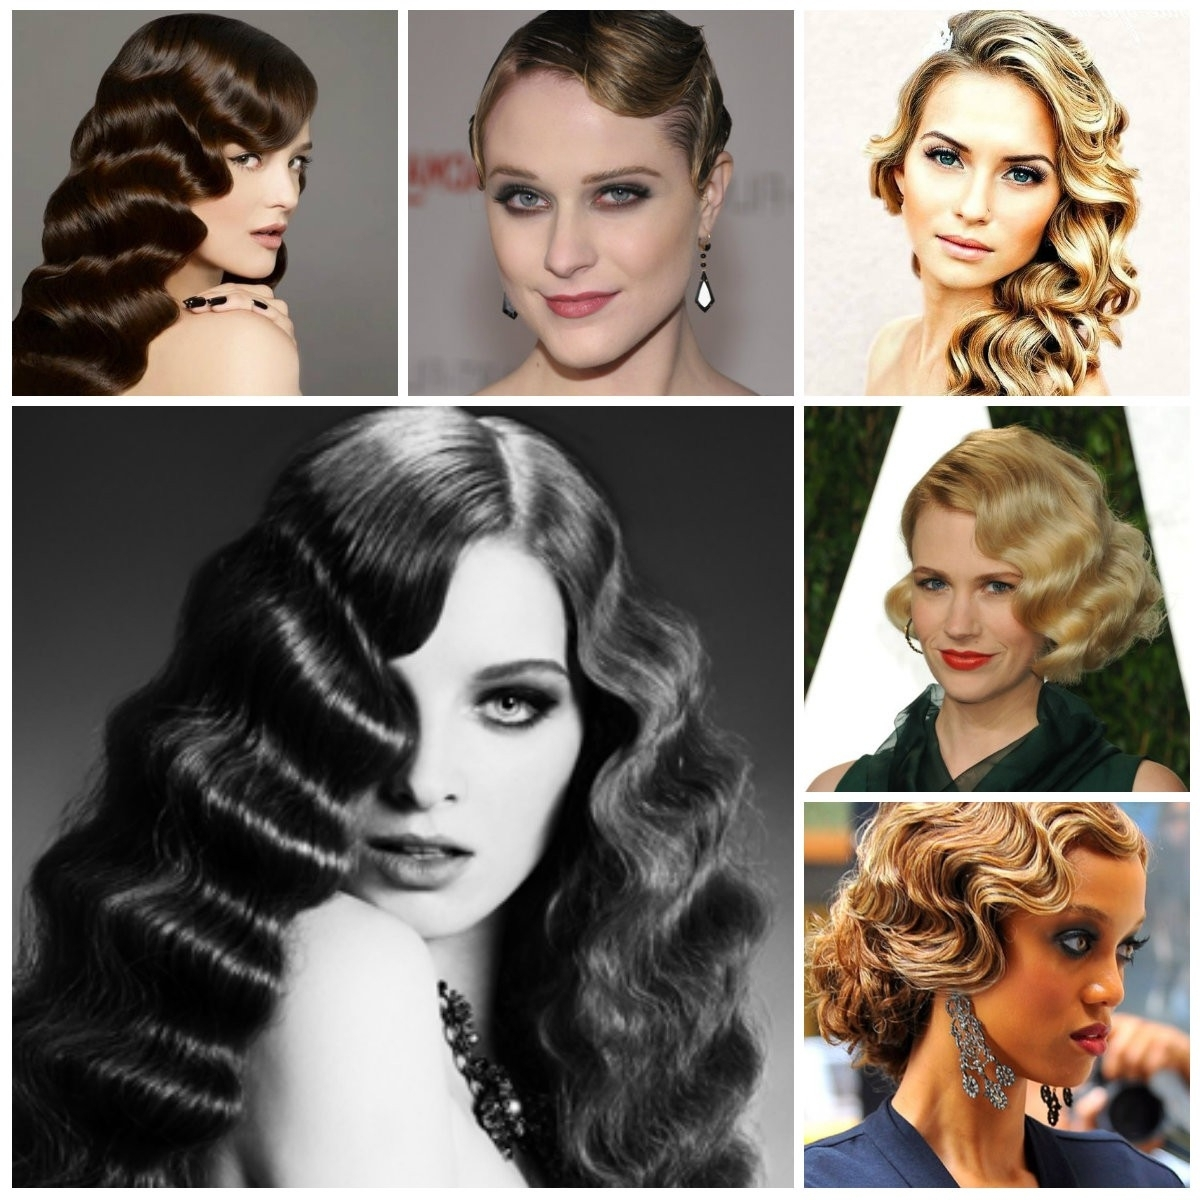 Finger Waves Long Hair Updo Archives – Hairstyles And Haircuts In 2018 Within Finger Waves Long Hair Updo Hairstyles (View 6 of 15)